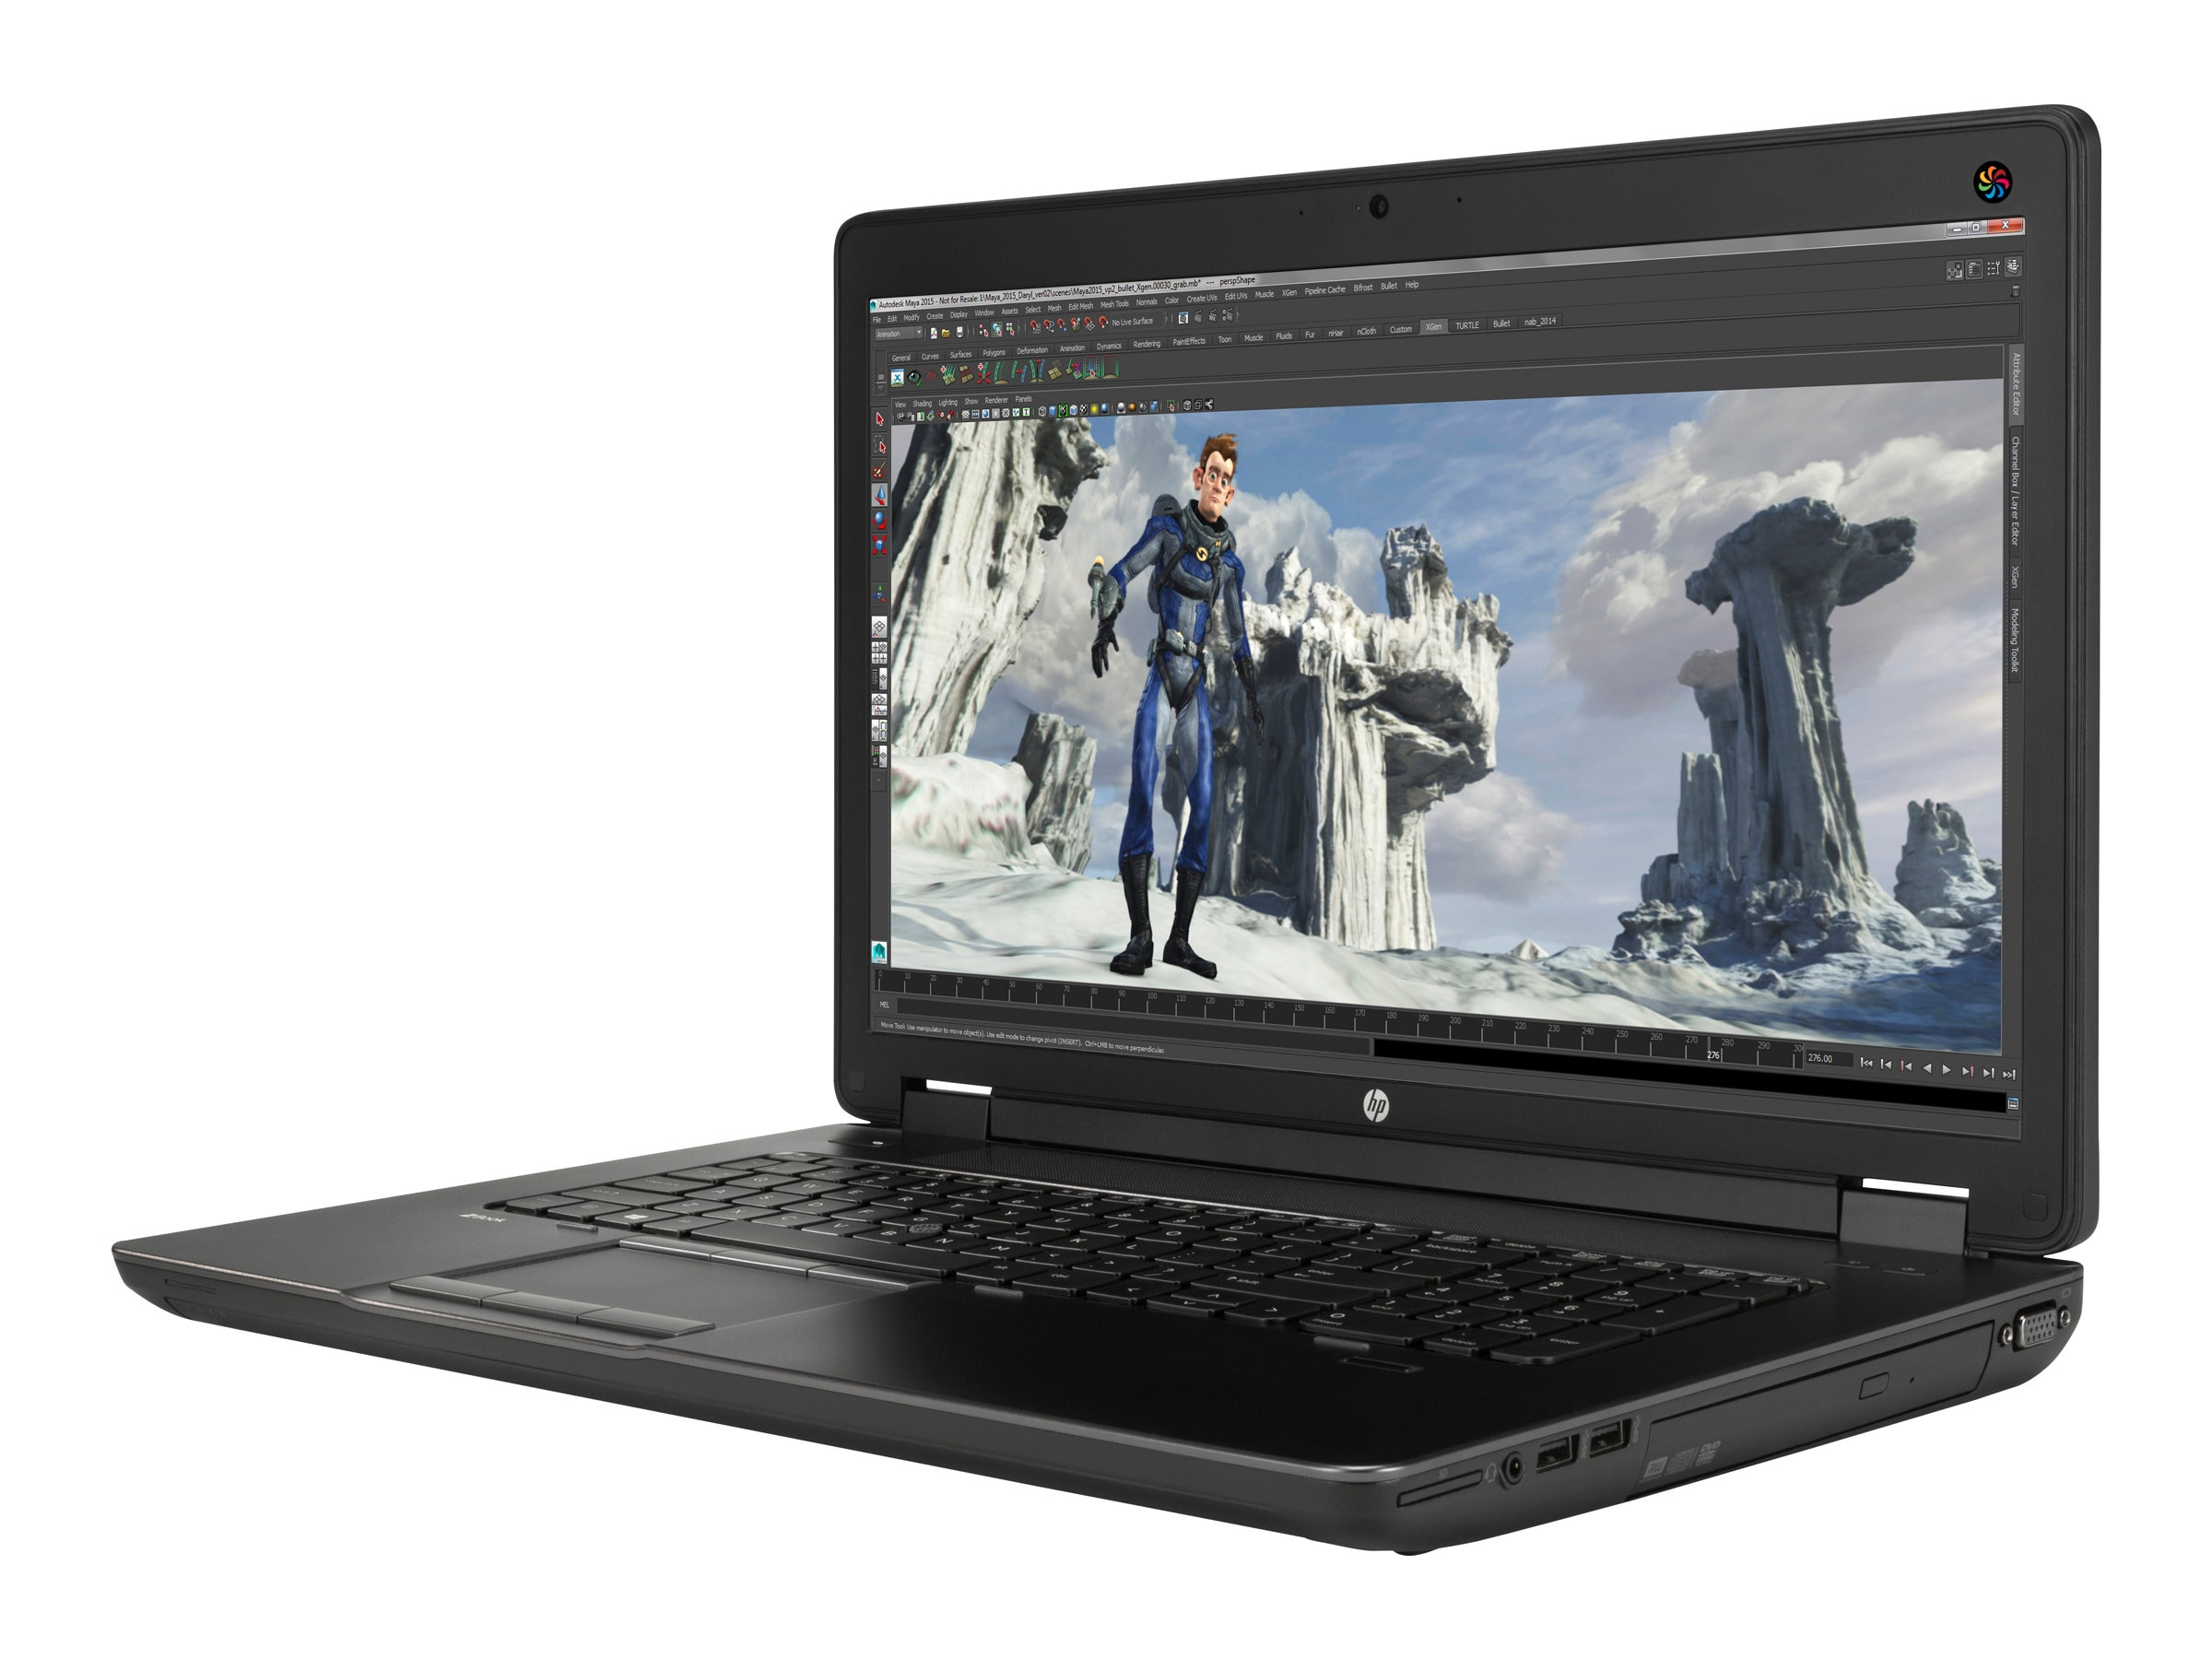 HP ZBook 17 Core i7-4910MQ 2.9GHz 4GB 1TB DVD+RW BT 17.3 W7P64, T7G86US#ABA, 30737708, Notebooks